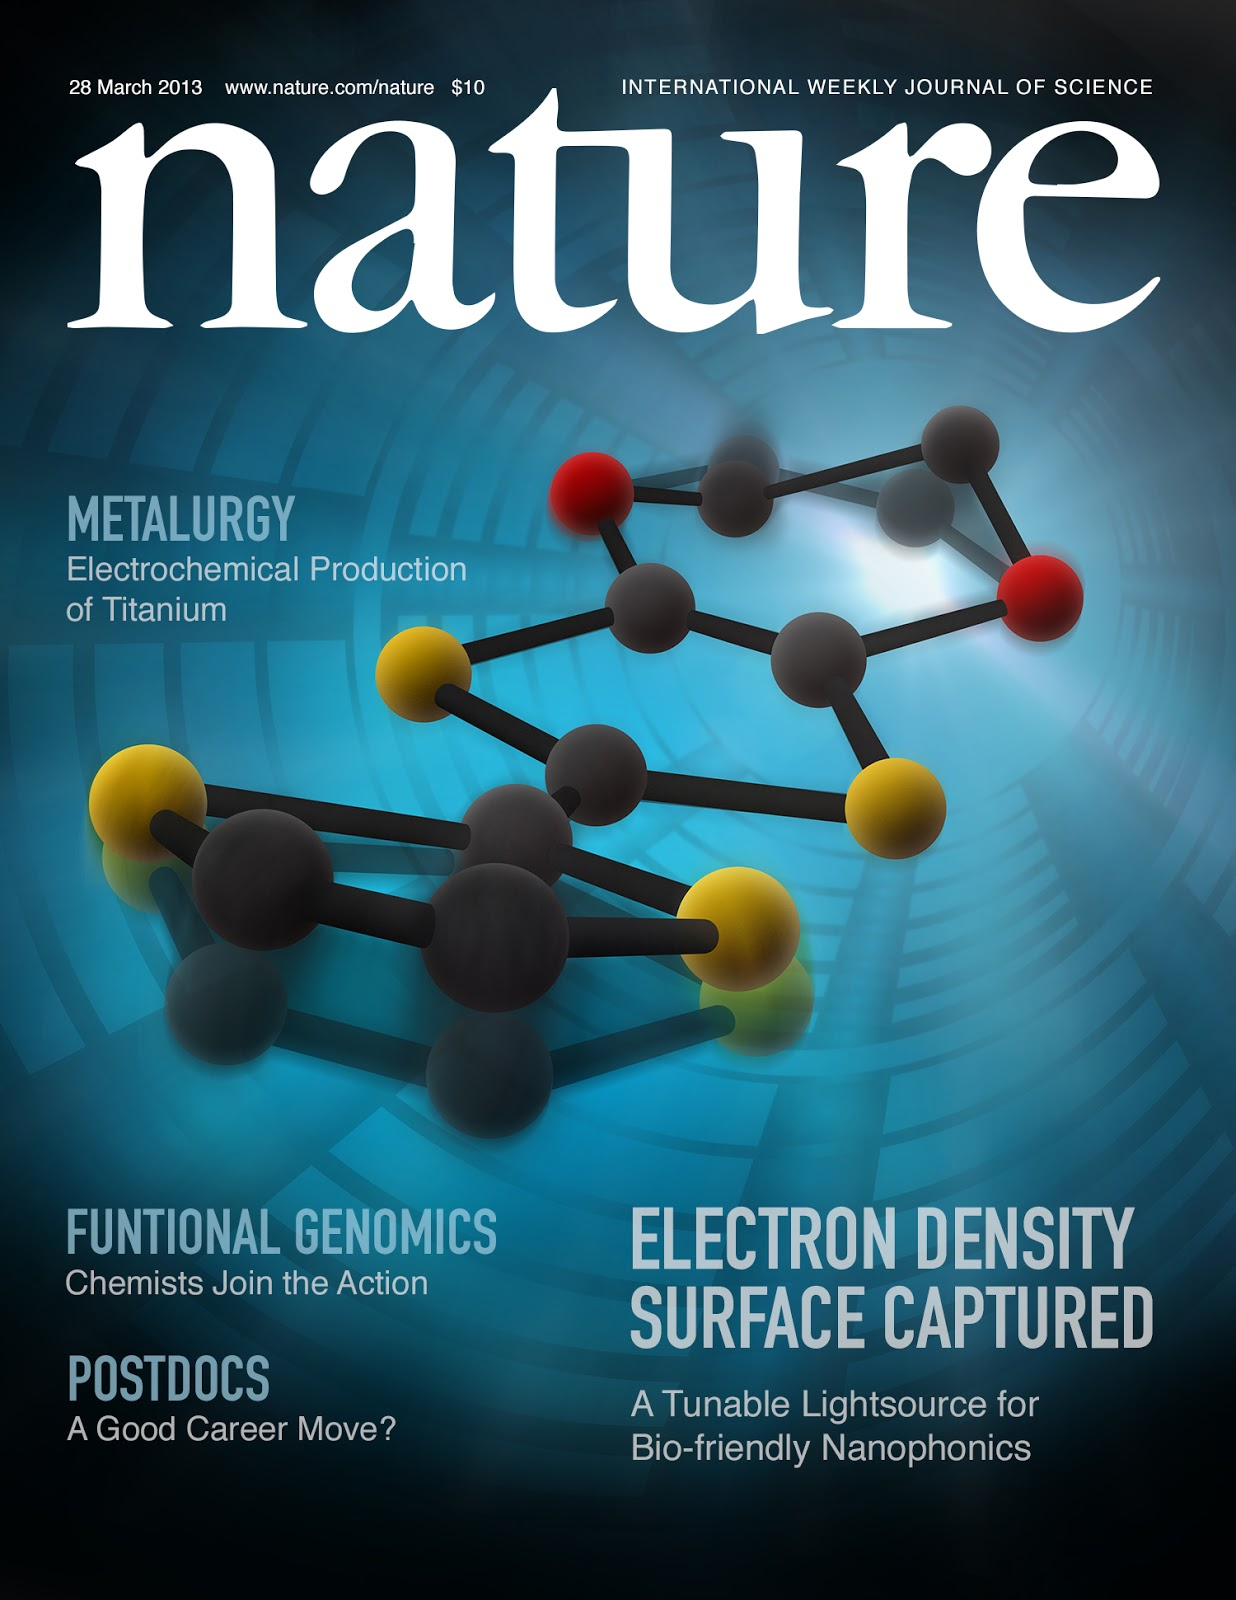 Book Cover Design Science And Nature : Pawan singh bhati official nature magazine